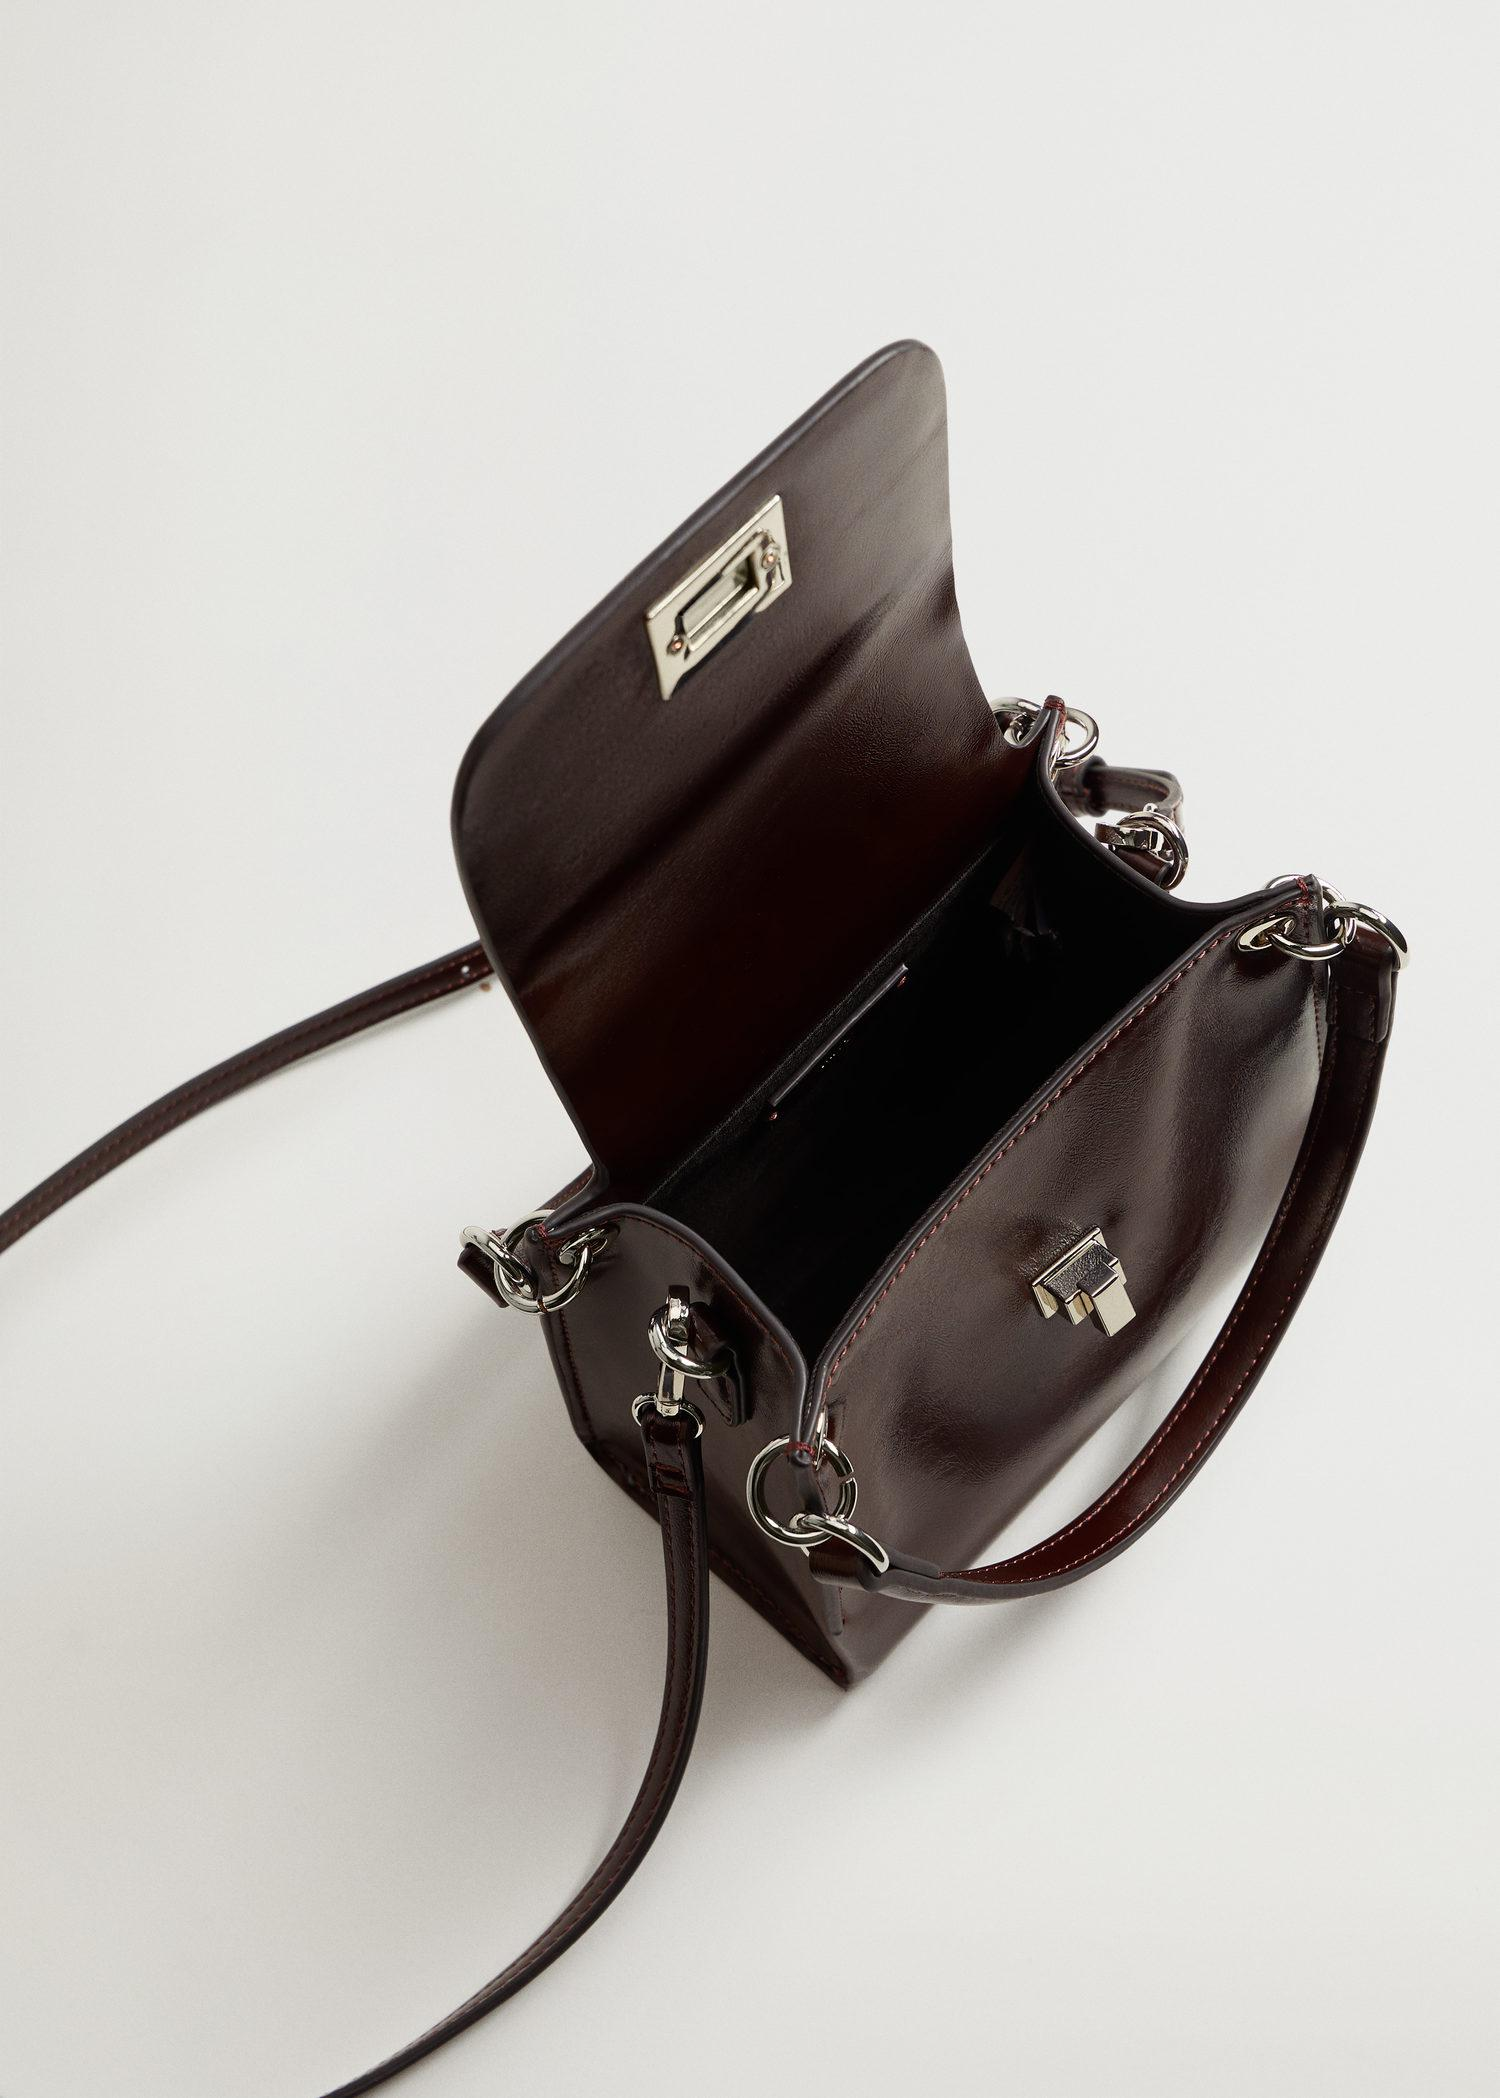 Double strap bag with flap 2